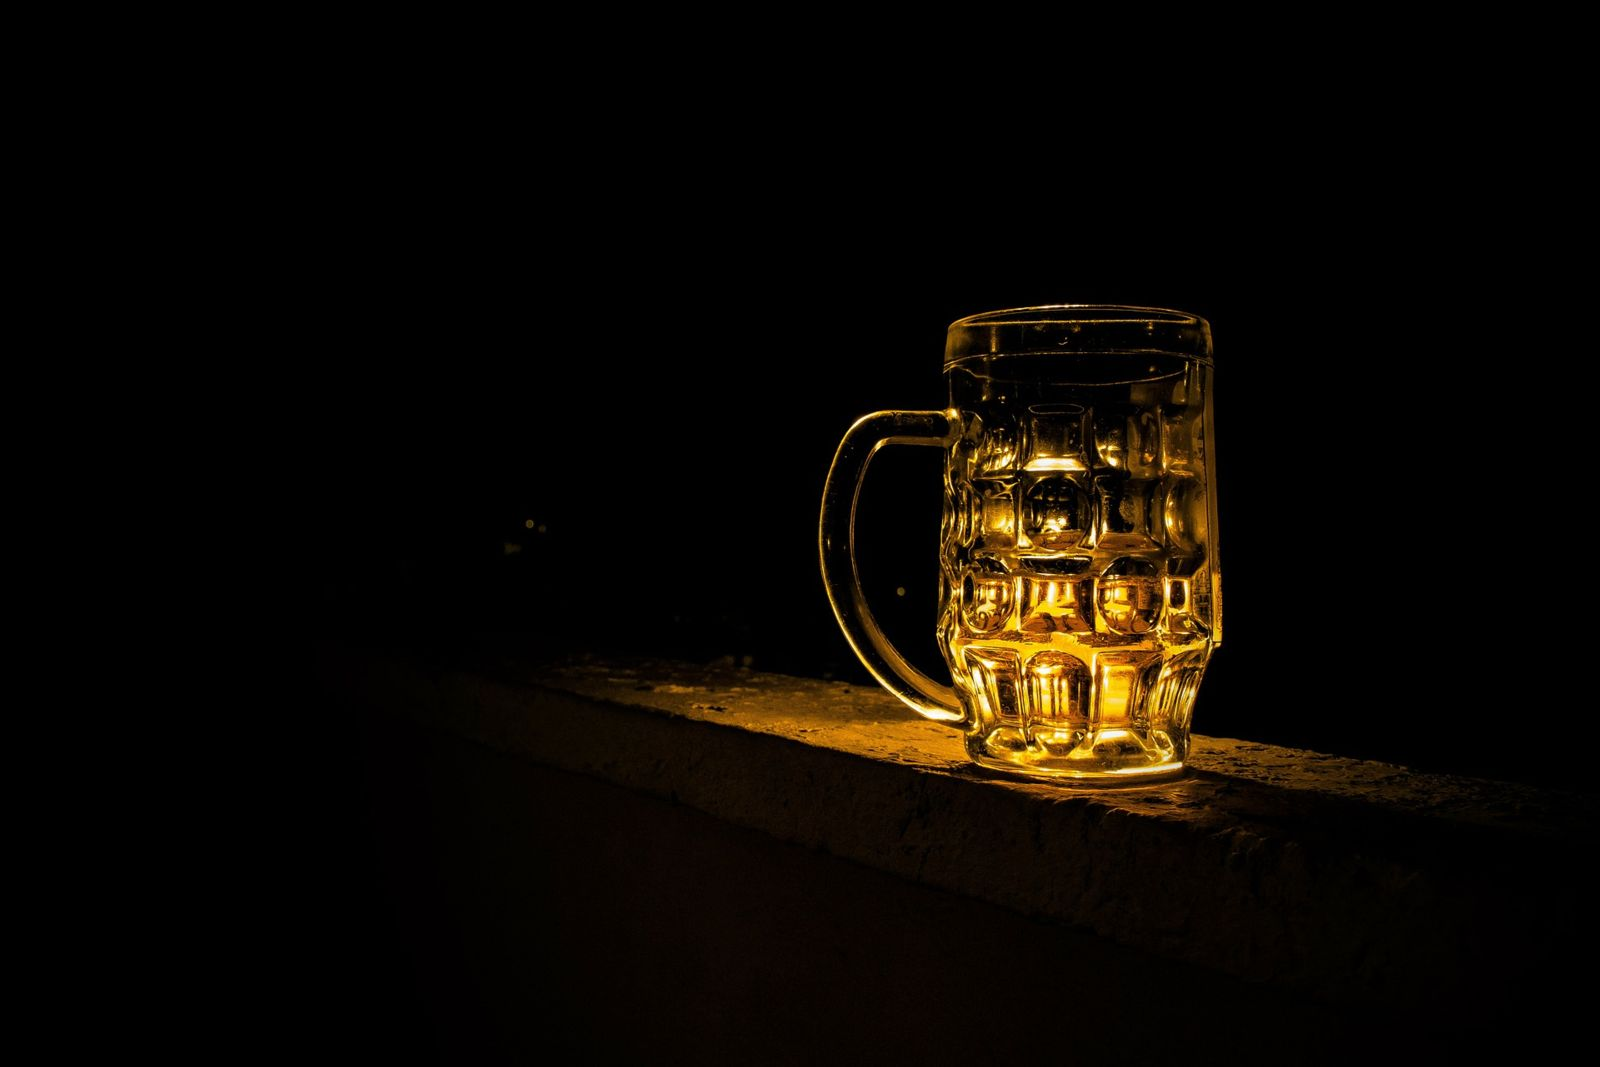 Glass of beer in dark setting